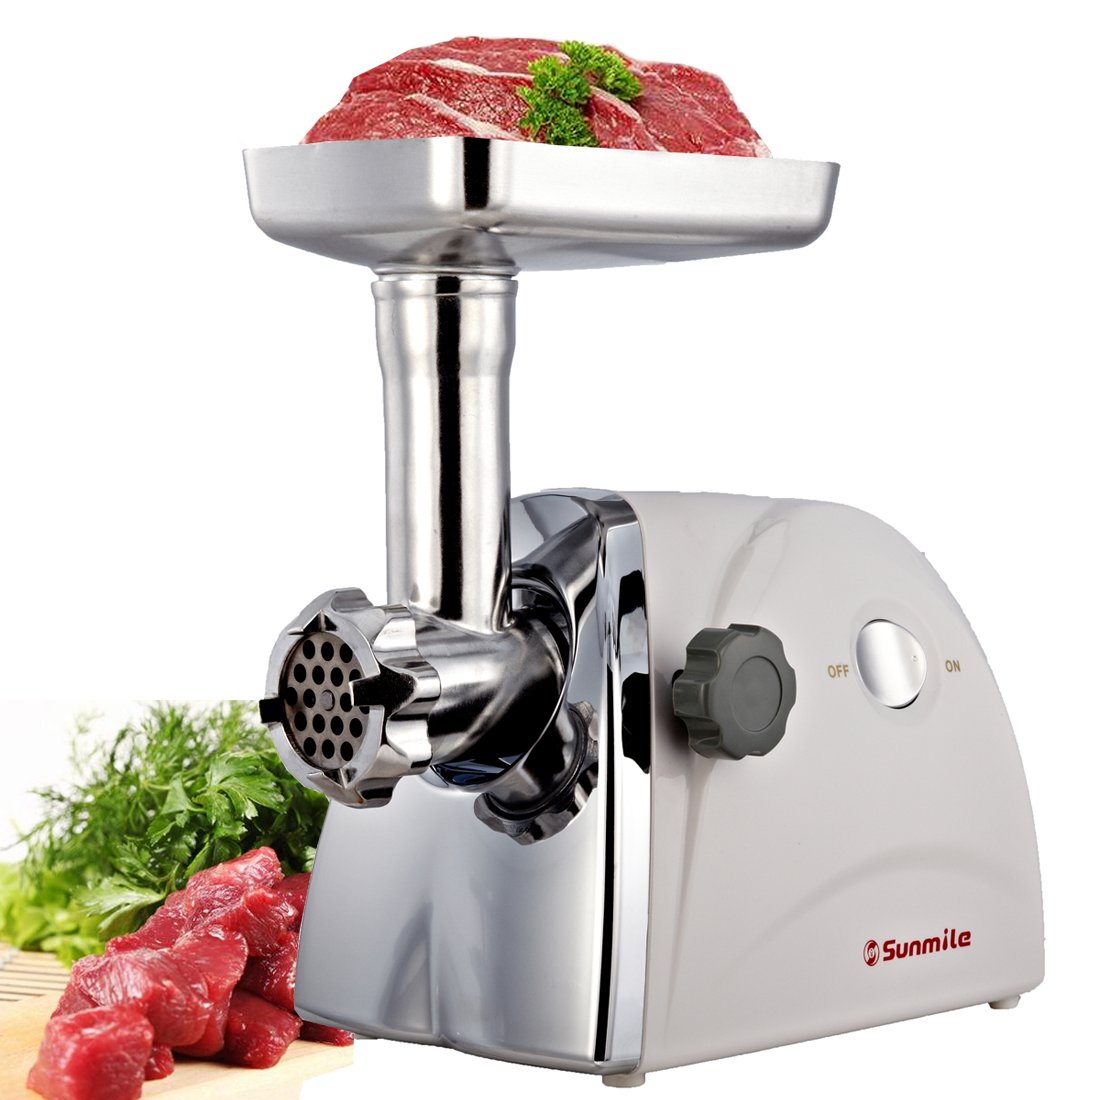 Best brand of meat grinder